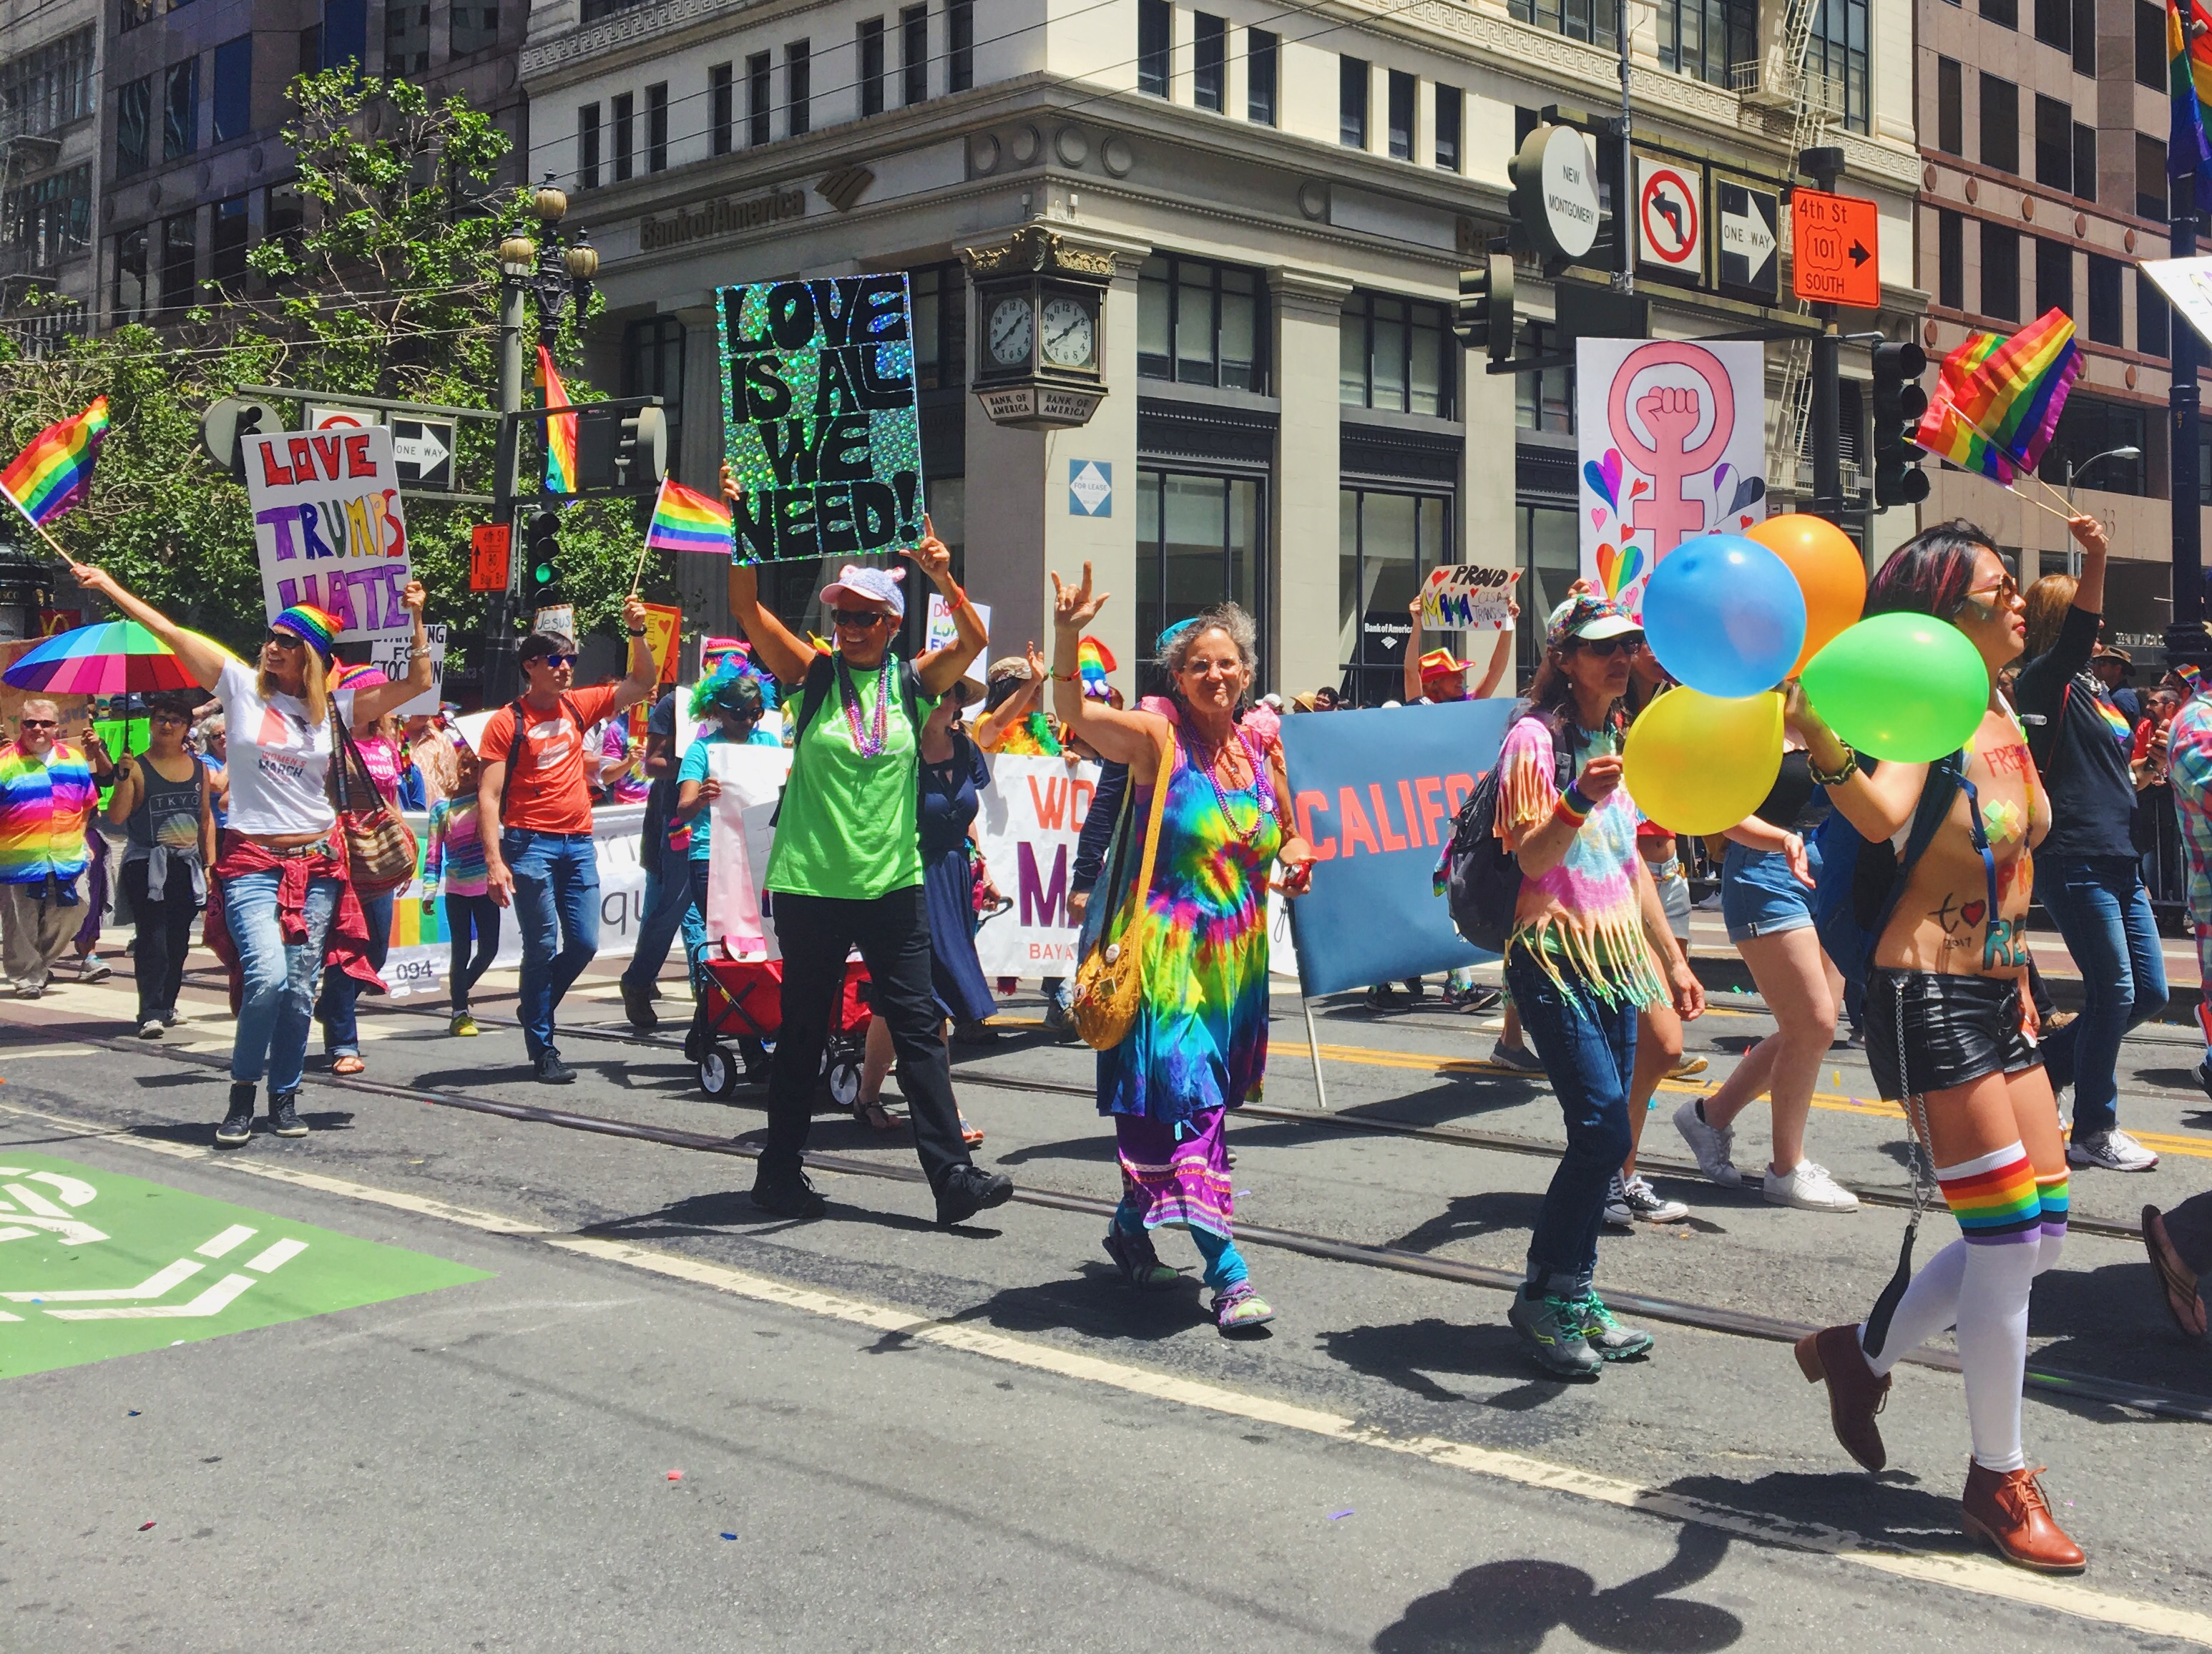 Love is all we need - L'evento migliore di San Francisco - la LGBTQ Pride Parade